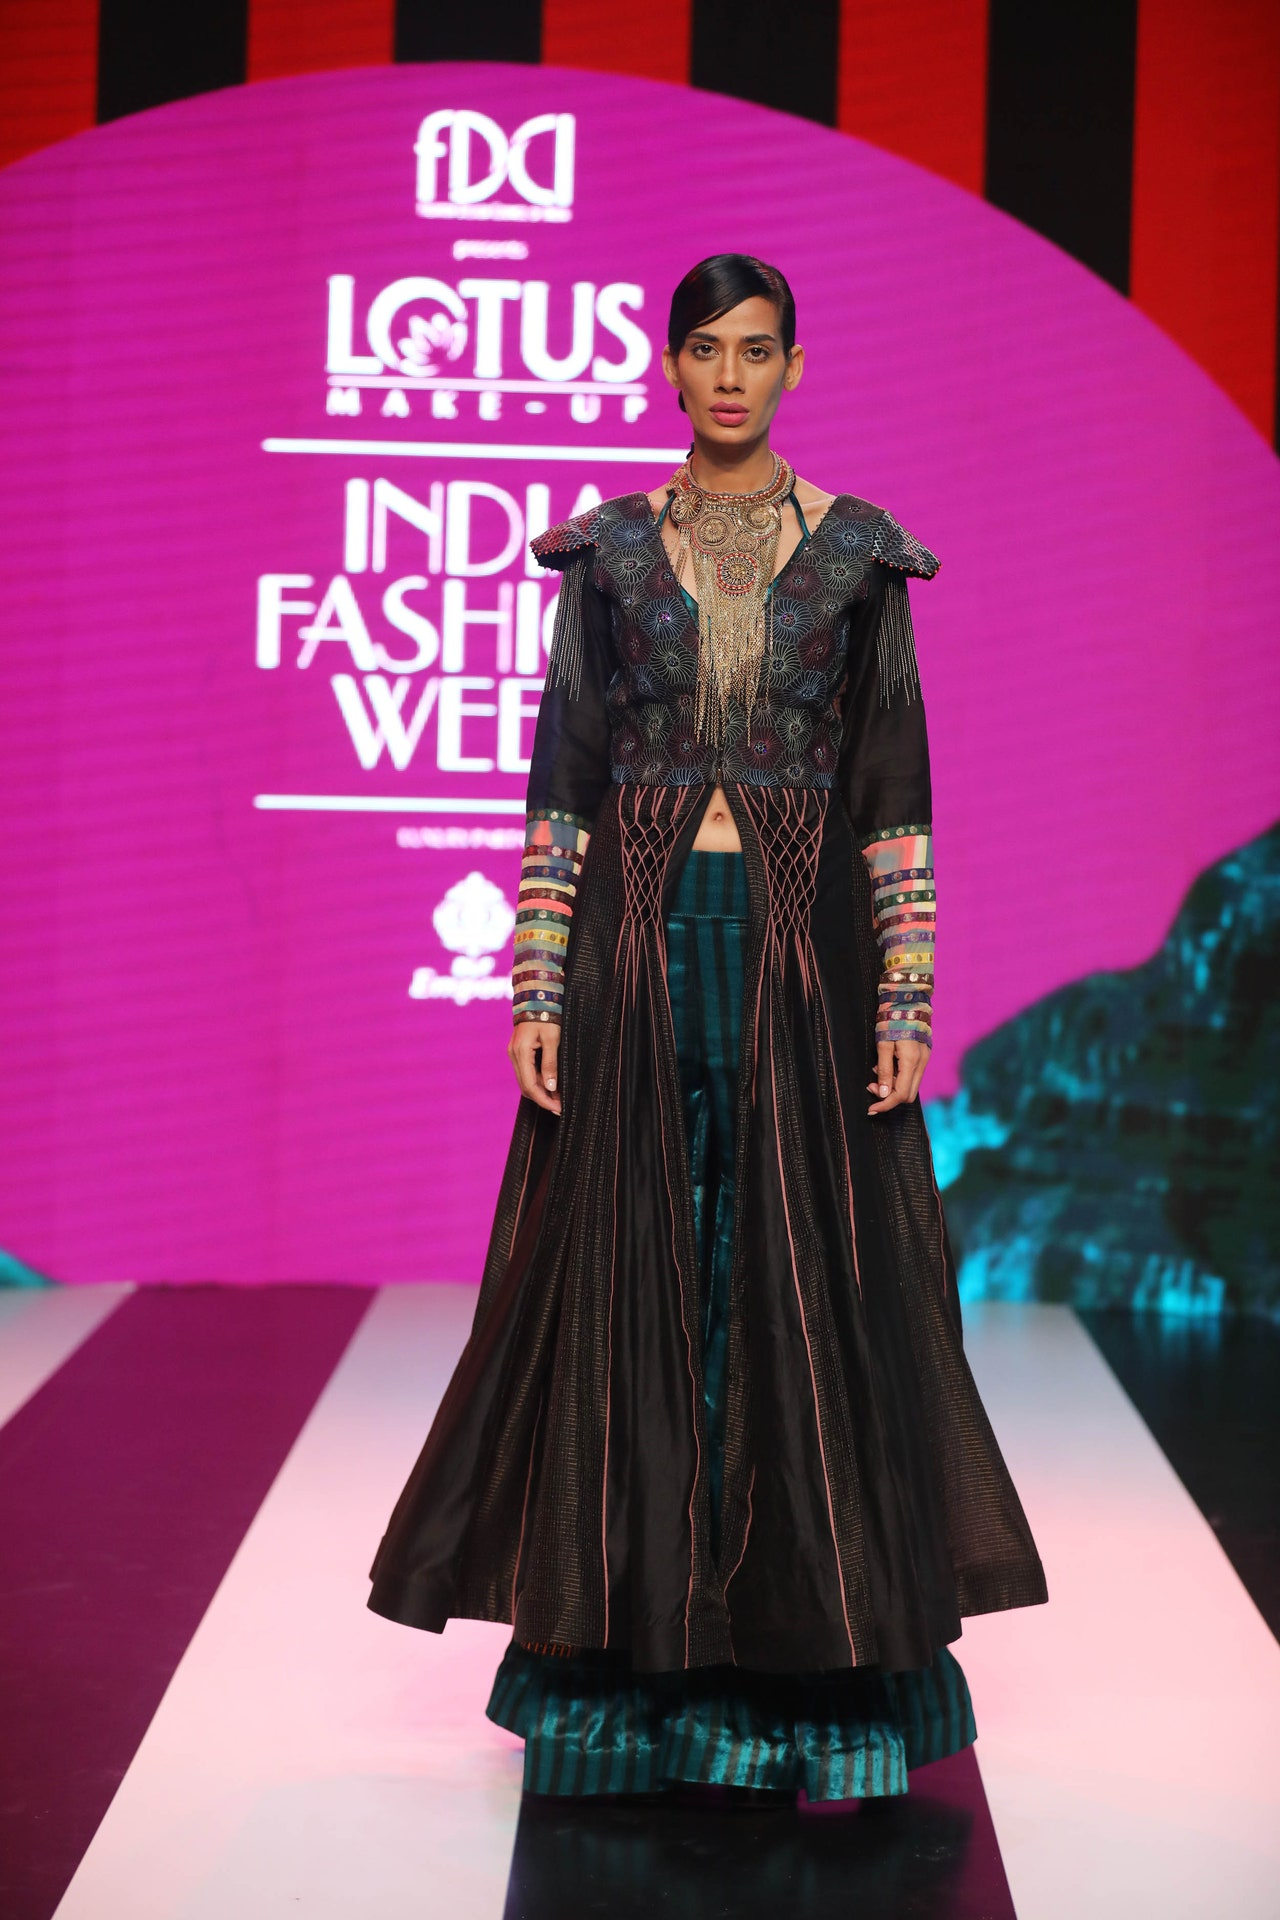 Ciceroni - Fashion Design Council of India – FDCI - Lotus Make-up India Fashion Week, Spring|Summer 2021 - 5 Biggest Indian Fashion Trends for Spring | Summer 2021